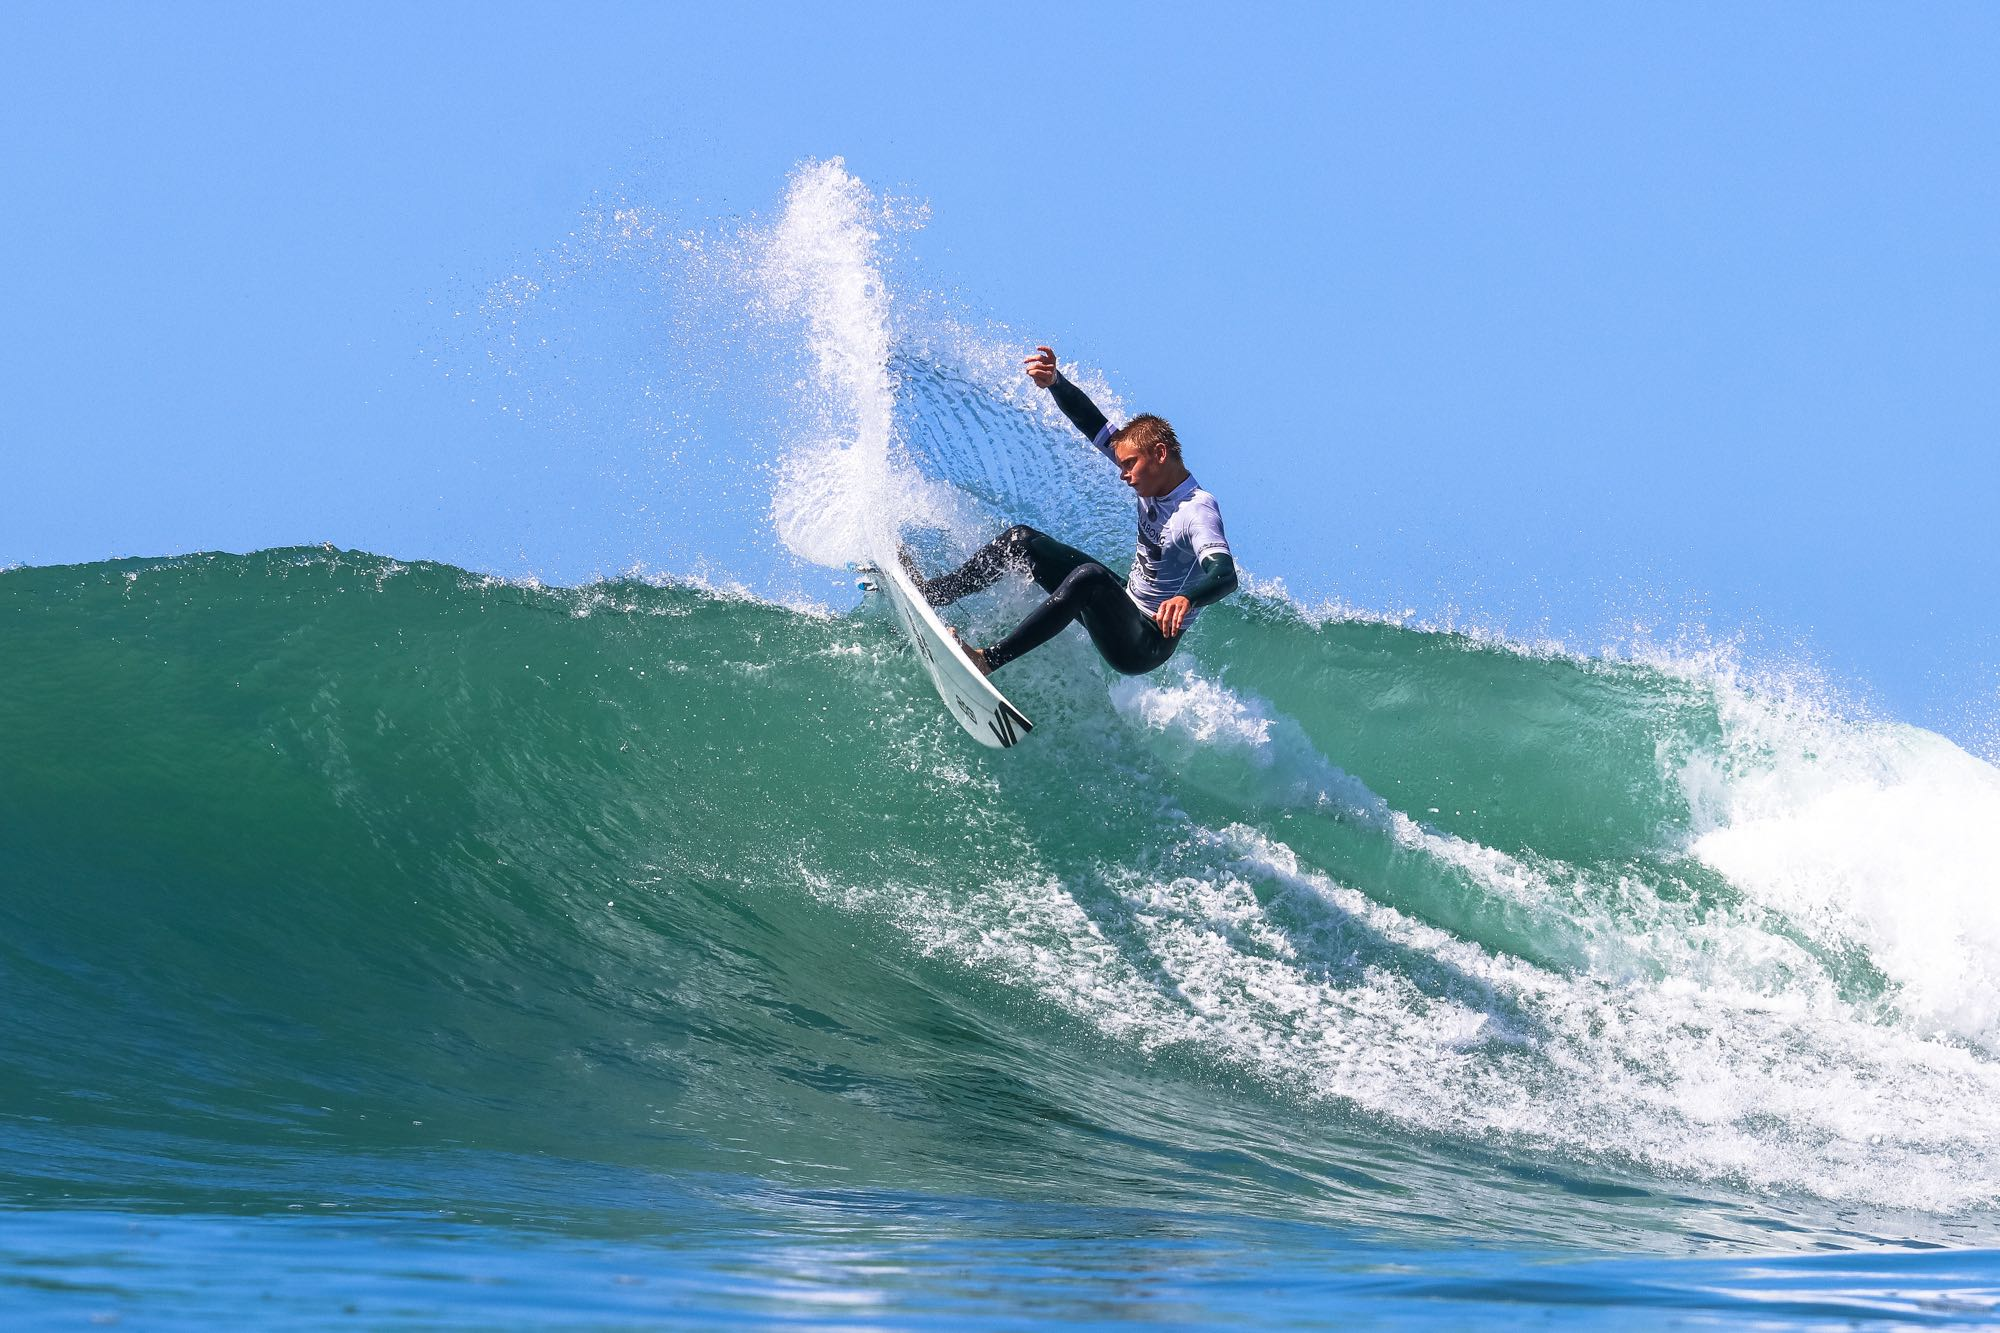 Ford Van Jaarsveld surfin this way to victory at the 2017 Billabong Junior Series